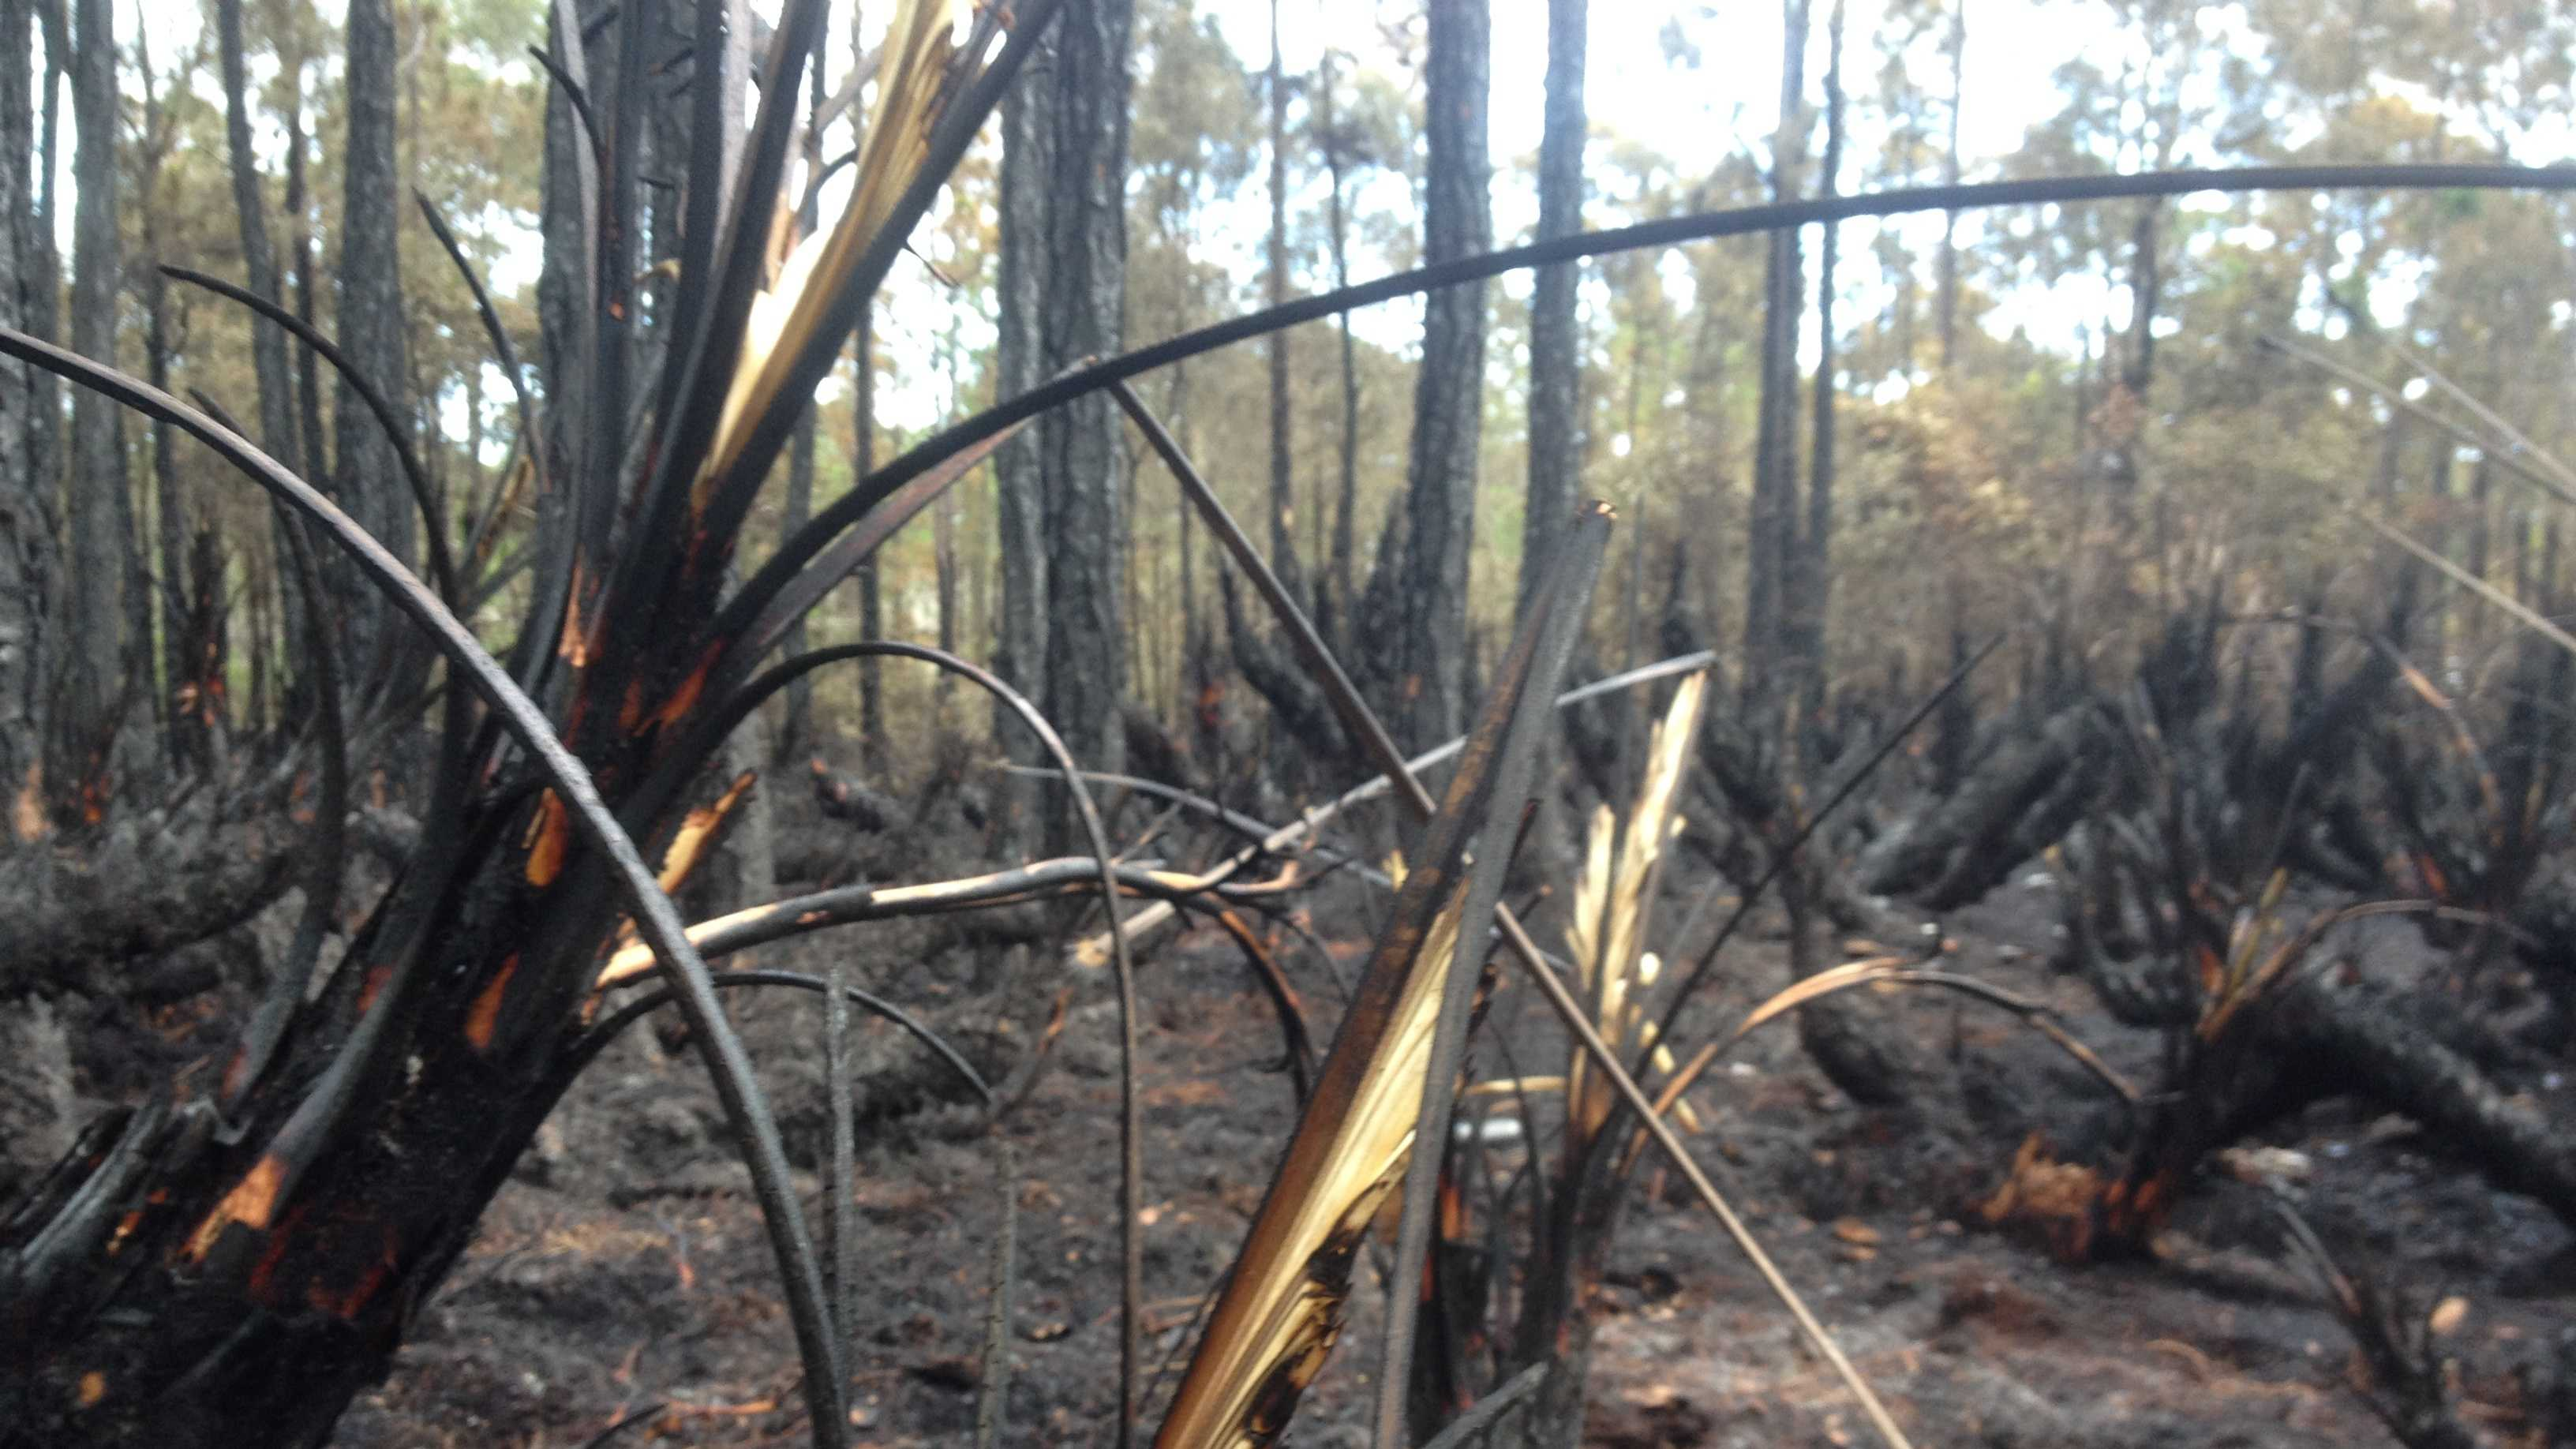 Firefighters are remaining extremely cautious after Wednesday's brush fire near Indrio Road in Fort Pierce, the site of a brush fire also in the same area last year.